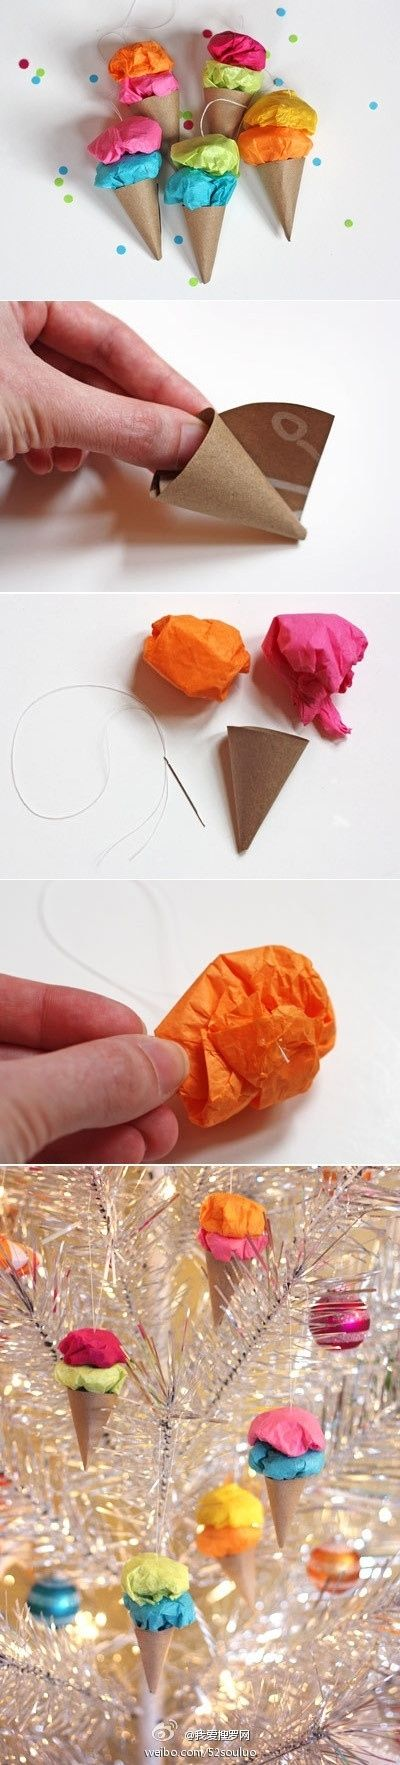 51 Hopelessly Adorable DIY Christmas Decorations from BuzzFeed